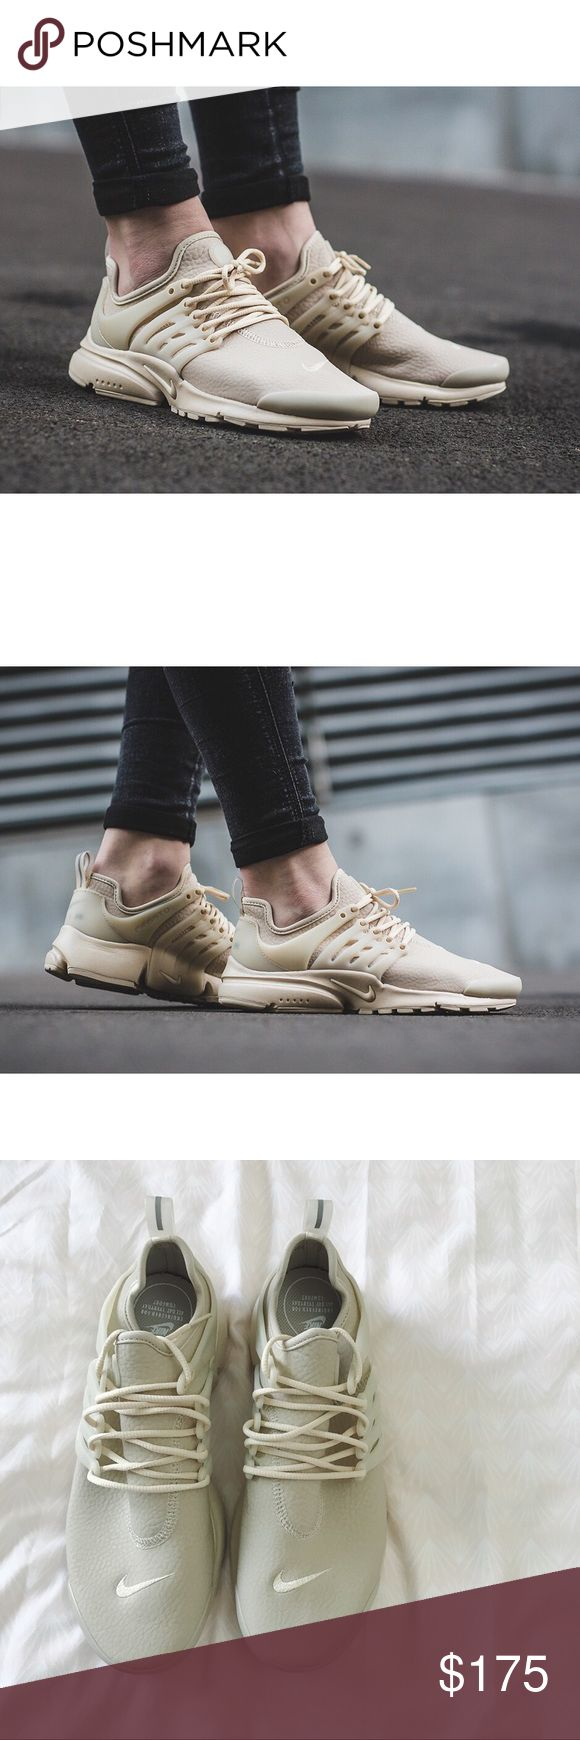 Nike Oatmeal Premium Leather Presto Sneakers •The Nike Air Presto Premium Women's Shoe reimagines the original in supple stretch leather for a premium look and feel wherever you go. Color is Oatmeal.   •Women's size 9. This style is only available in whole sizes and they will fit an 9 or 9.5.   •New in box (no lid).  •No trades. Nike Shoes Sneakers